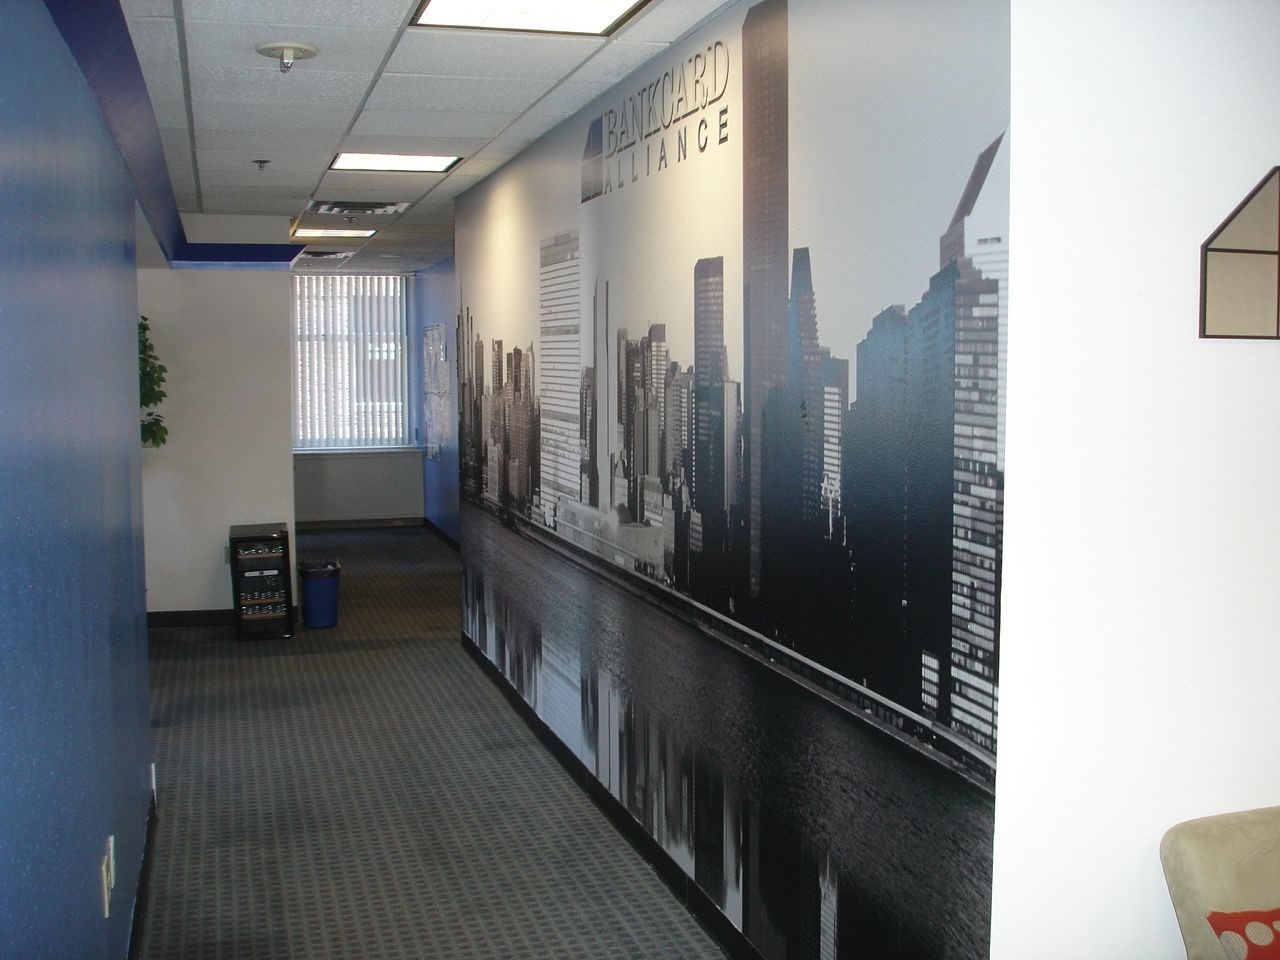 Wall mural for Bankcard Alliance in Newington, CT